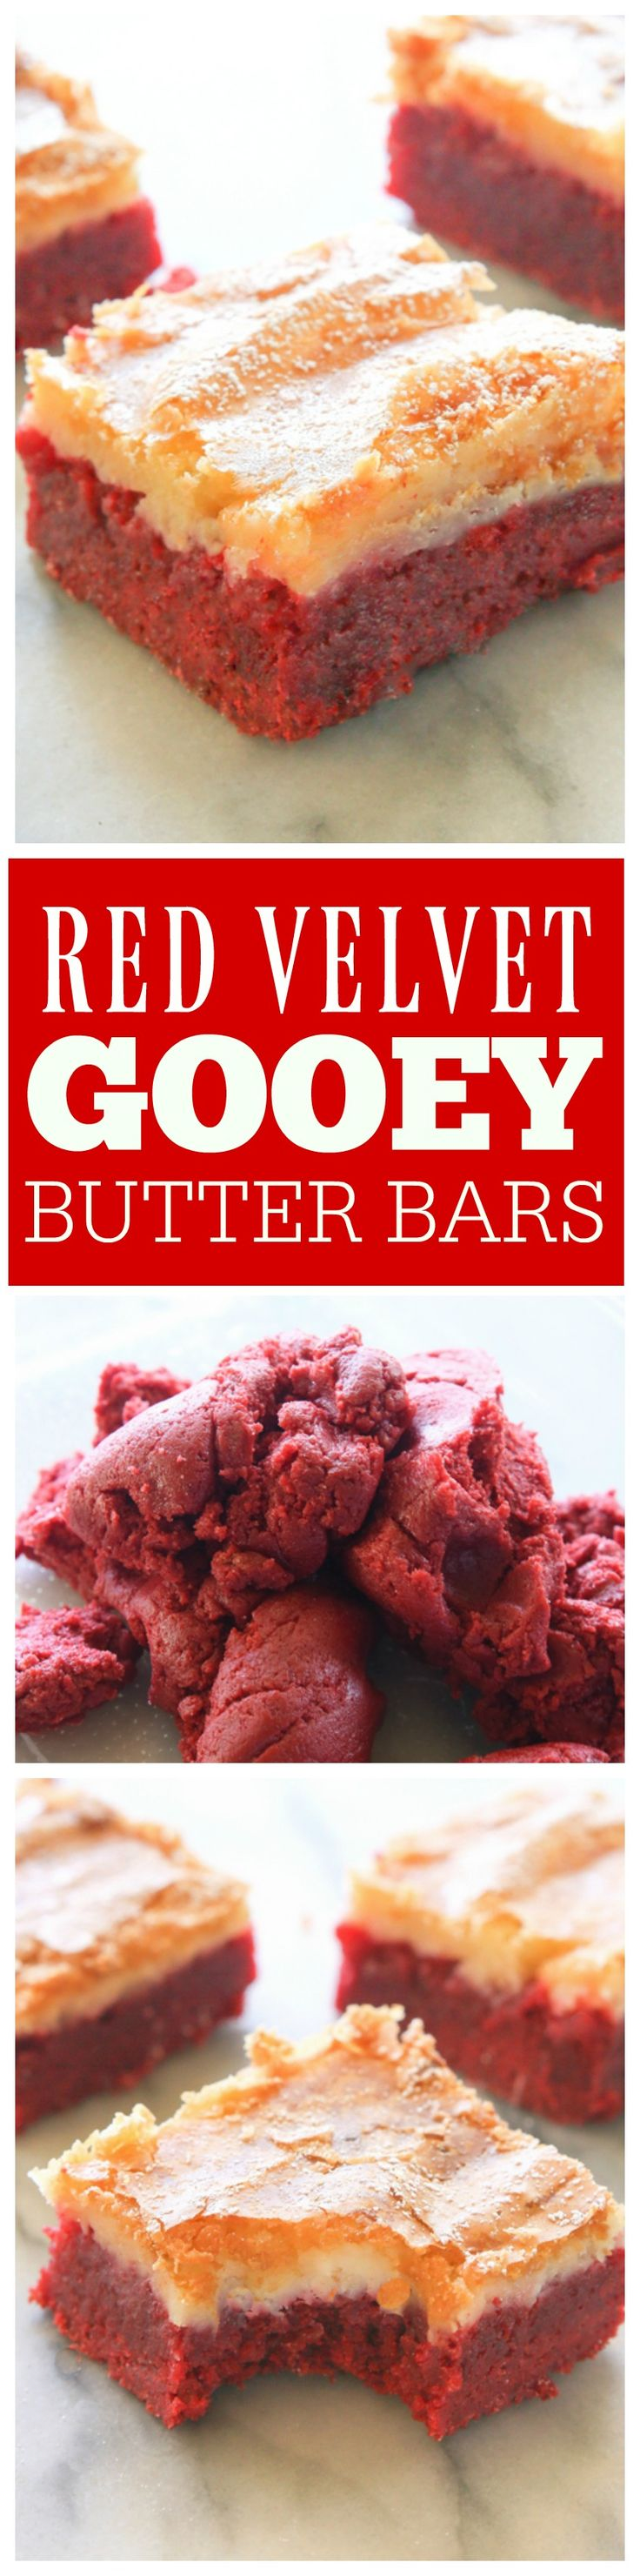 Red Velvet Gooey Butter Bars - The Girl Who Ate Everything